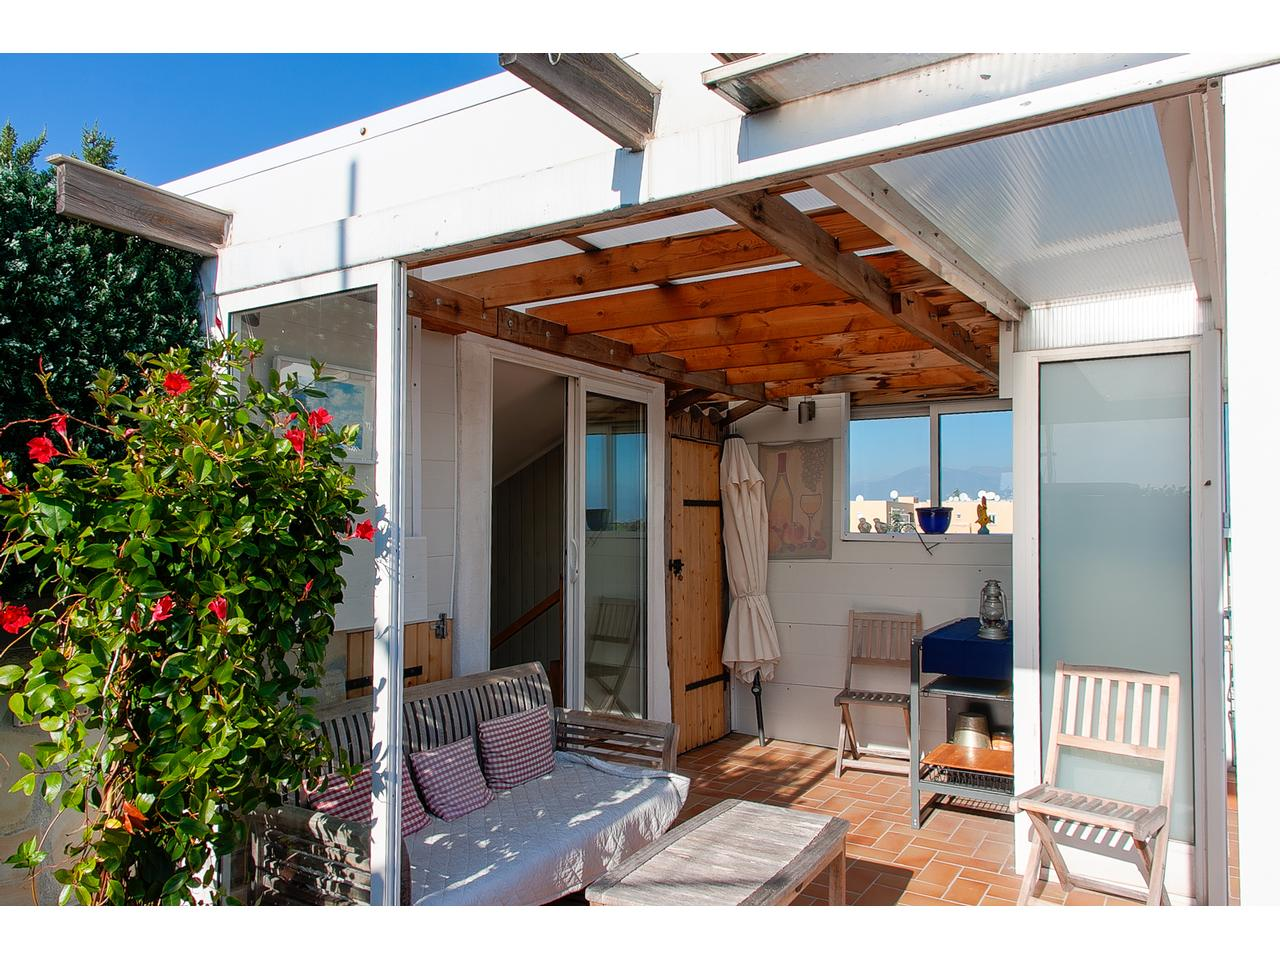 Immobilier nice vue mer appartement antibes 3 pieces villa for Toit terrasse immobilier